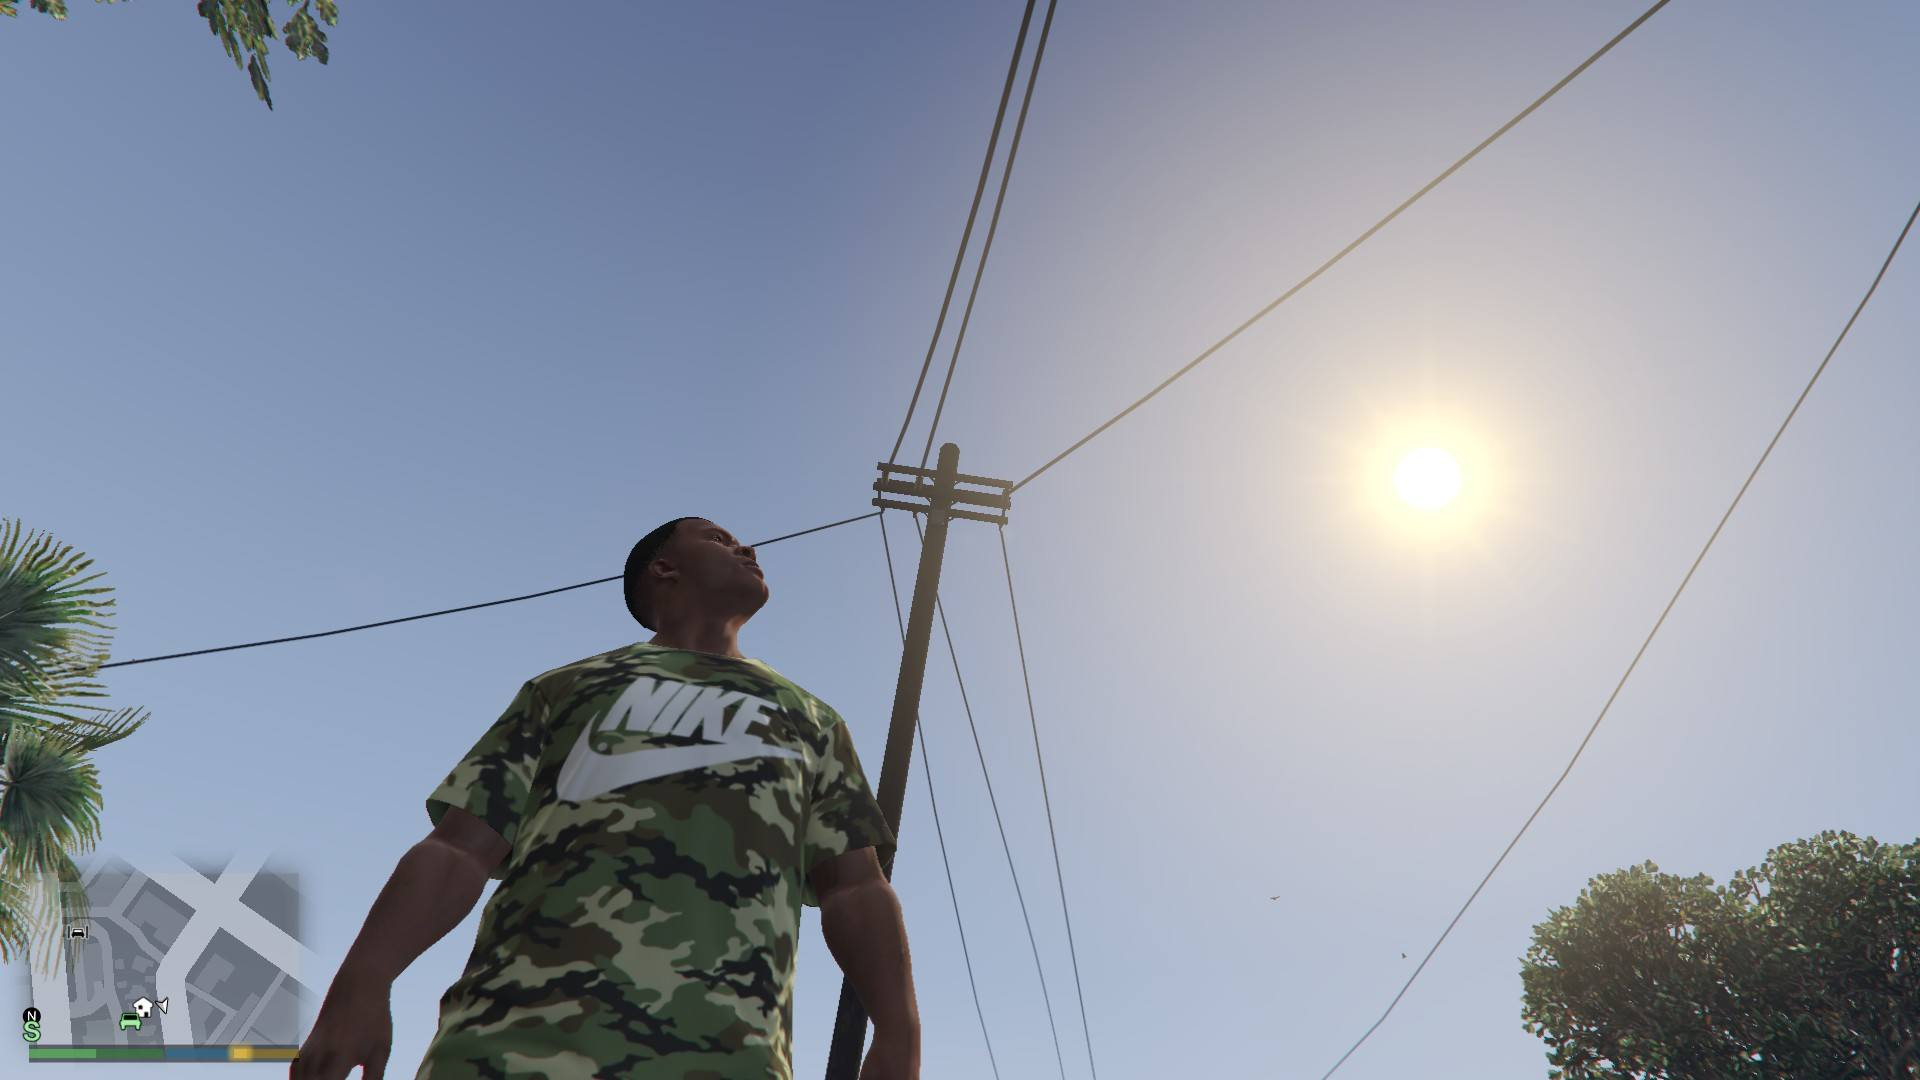 Nike Camo T-Shirt For Franklin GTA5 Mods (8)